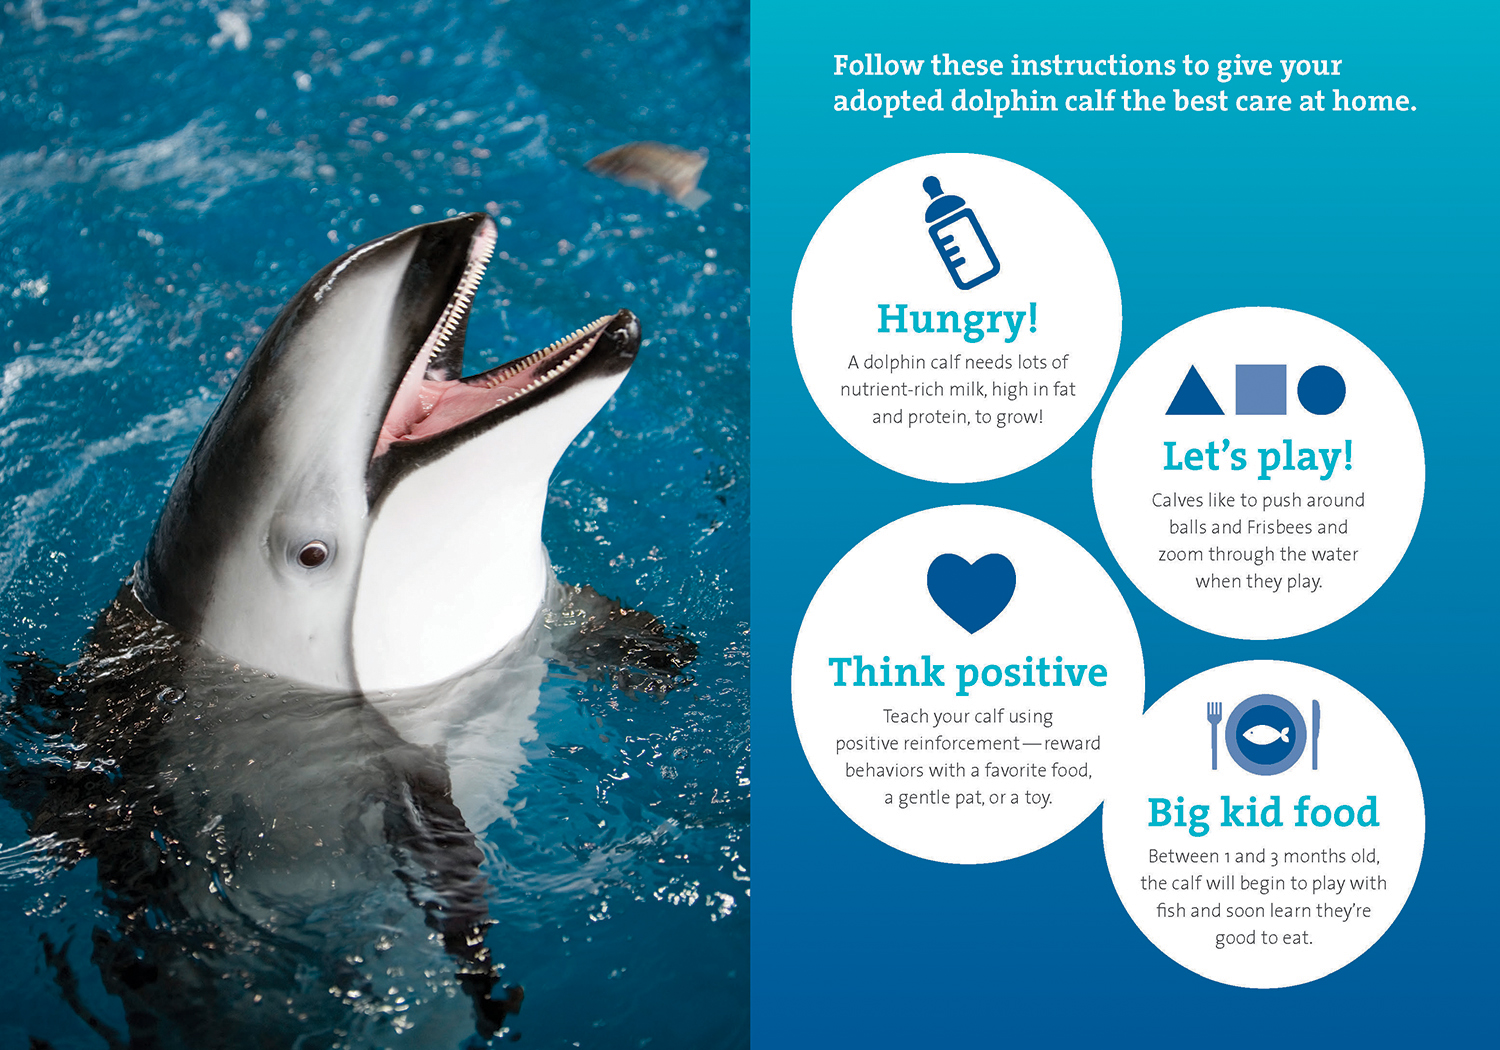 A two-page spread featuring a dolphin on the left, and on the right are various white circles over a blue-and-teal gradient, each with dolphin calf fun facts and a catchy headline and icon. The facts are preceded by a title reading 'Follow the instructions to give your adopted dolphin calf the best home.'